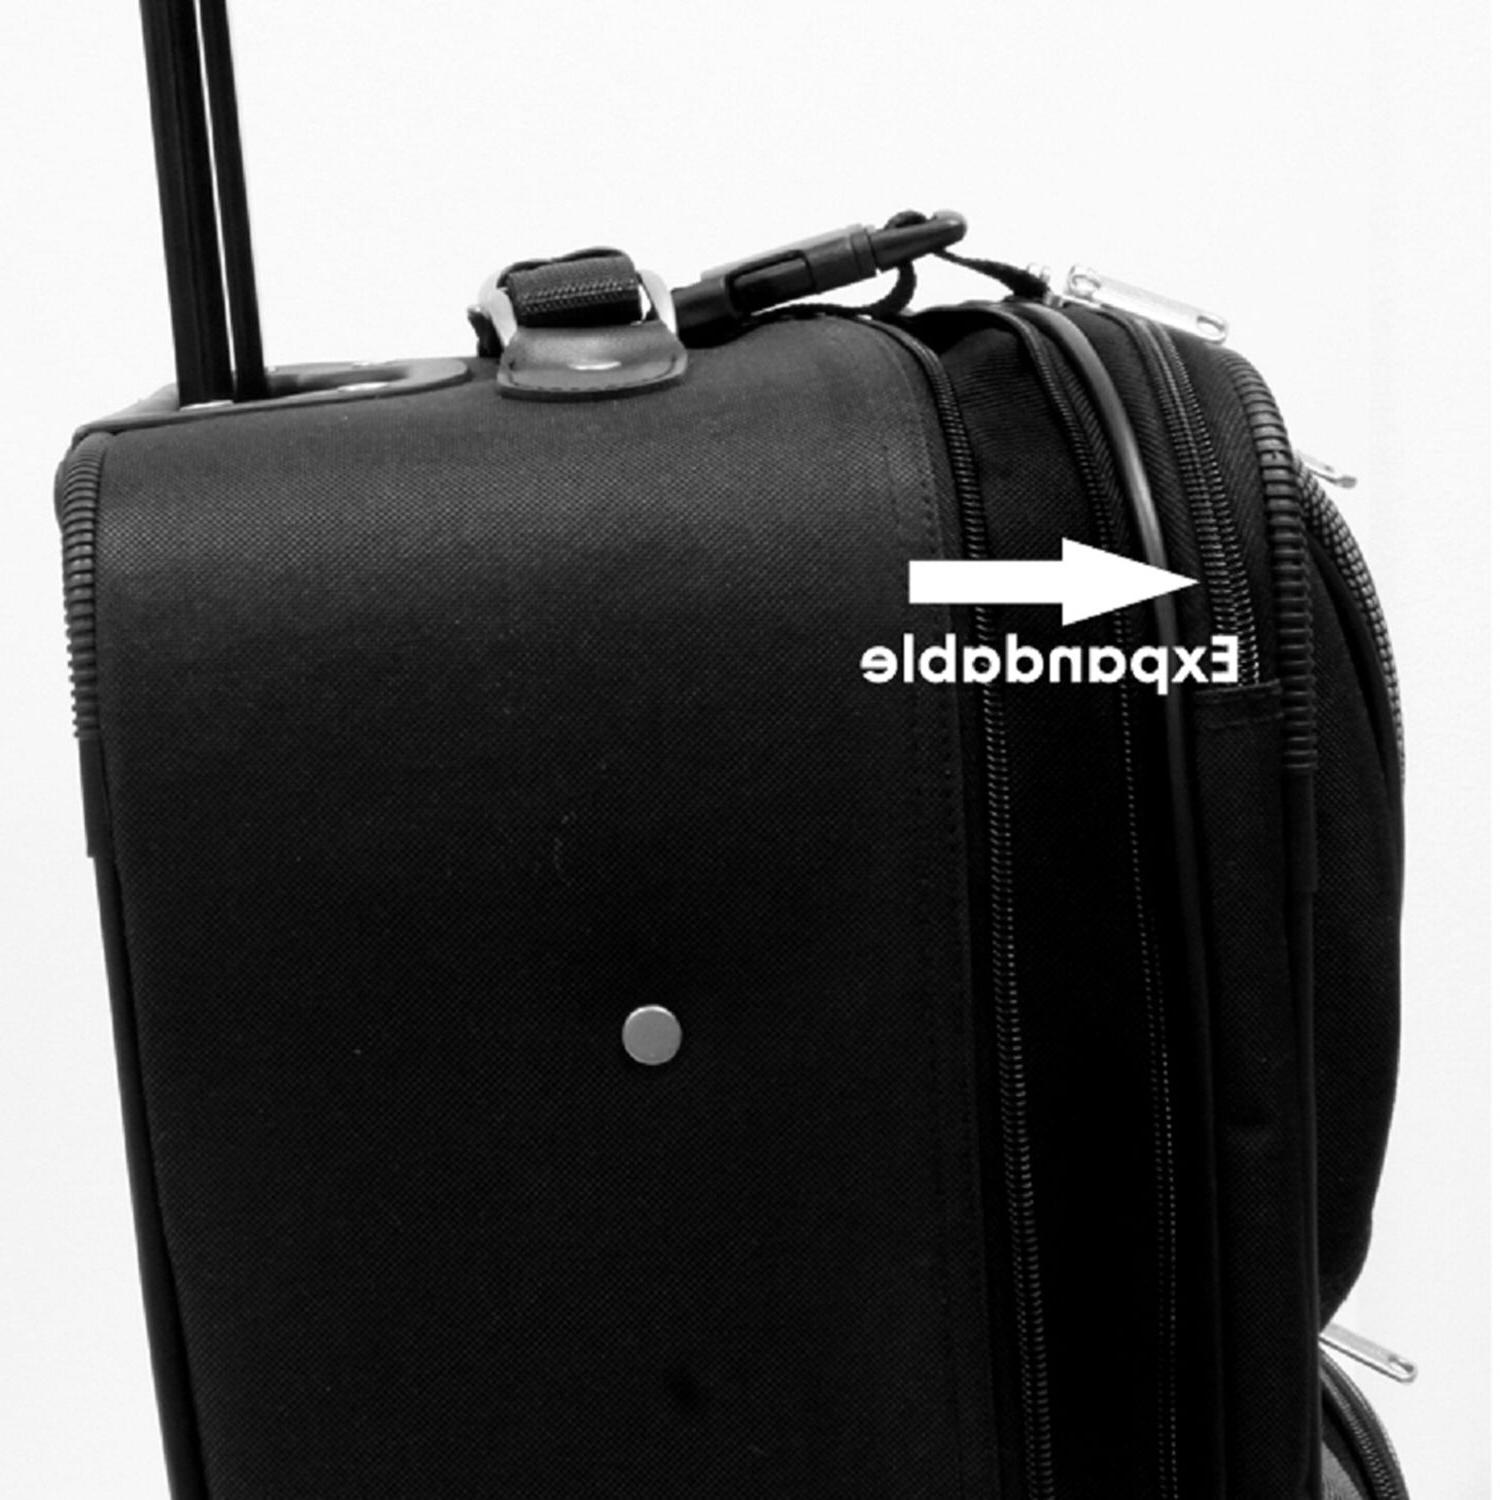 Traveler's Carry-on Suitcase